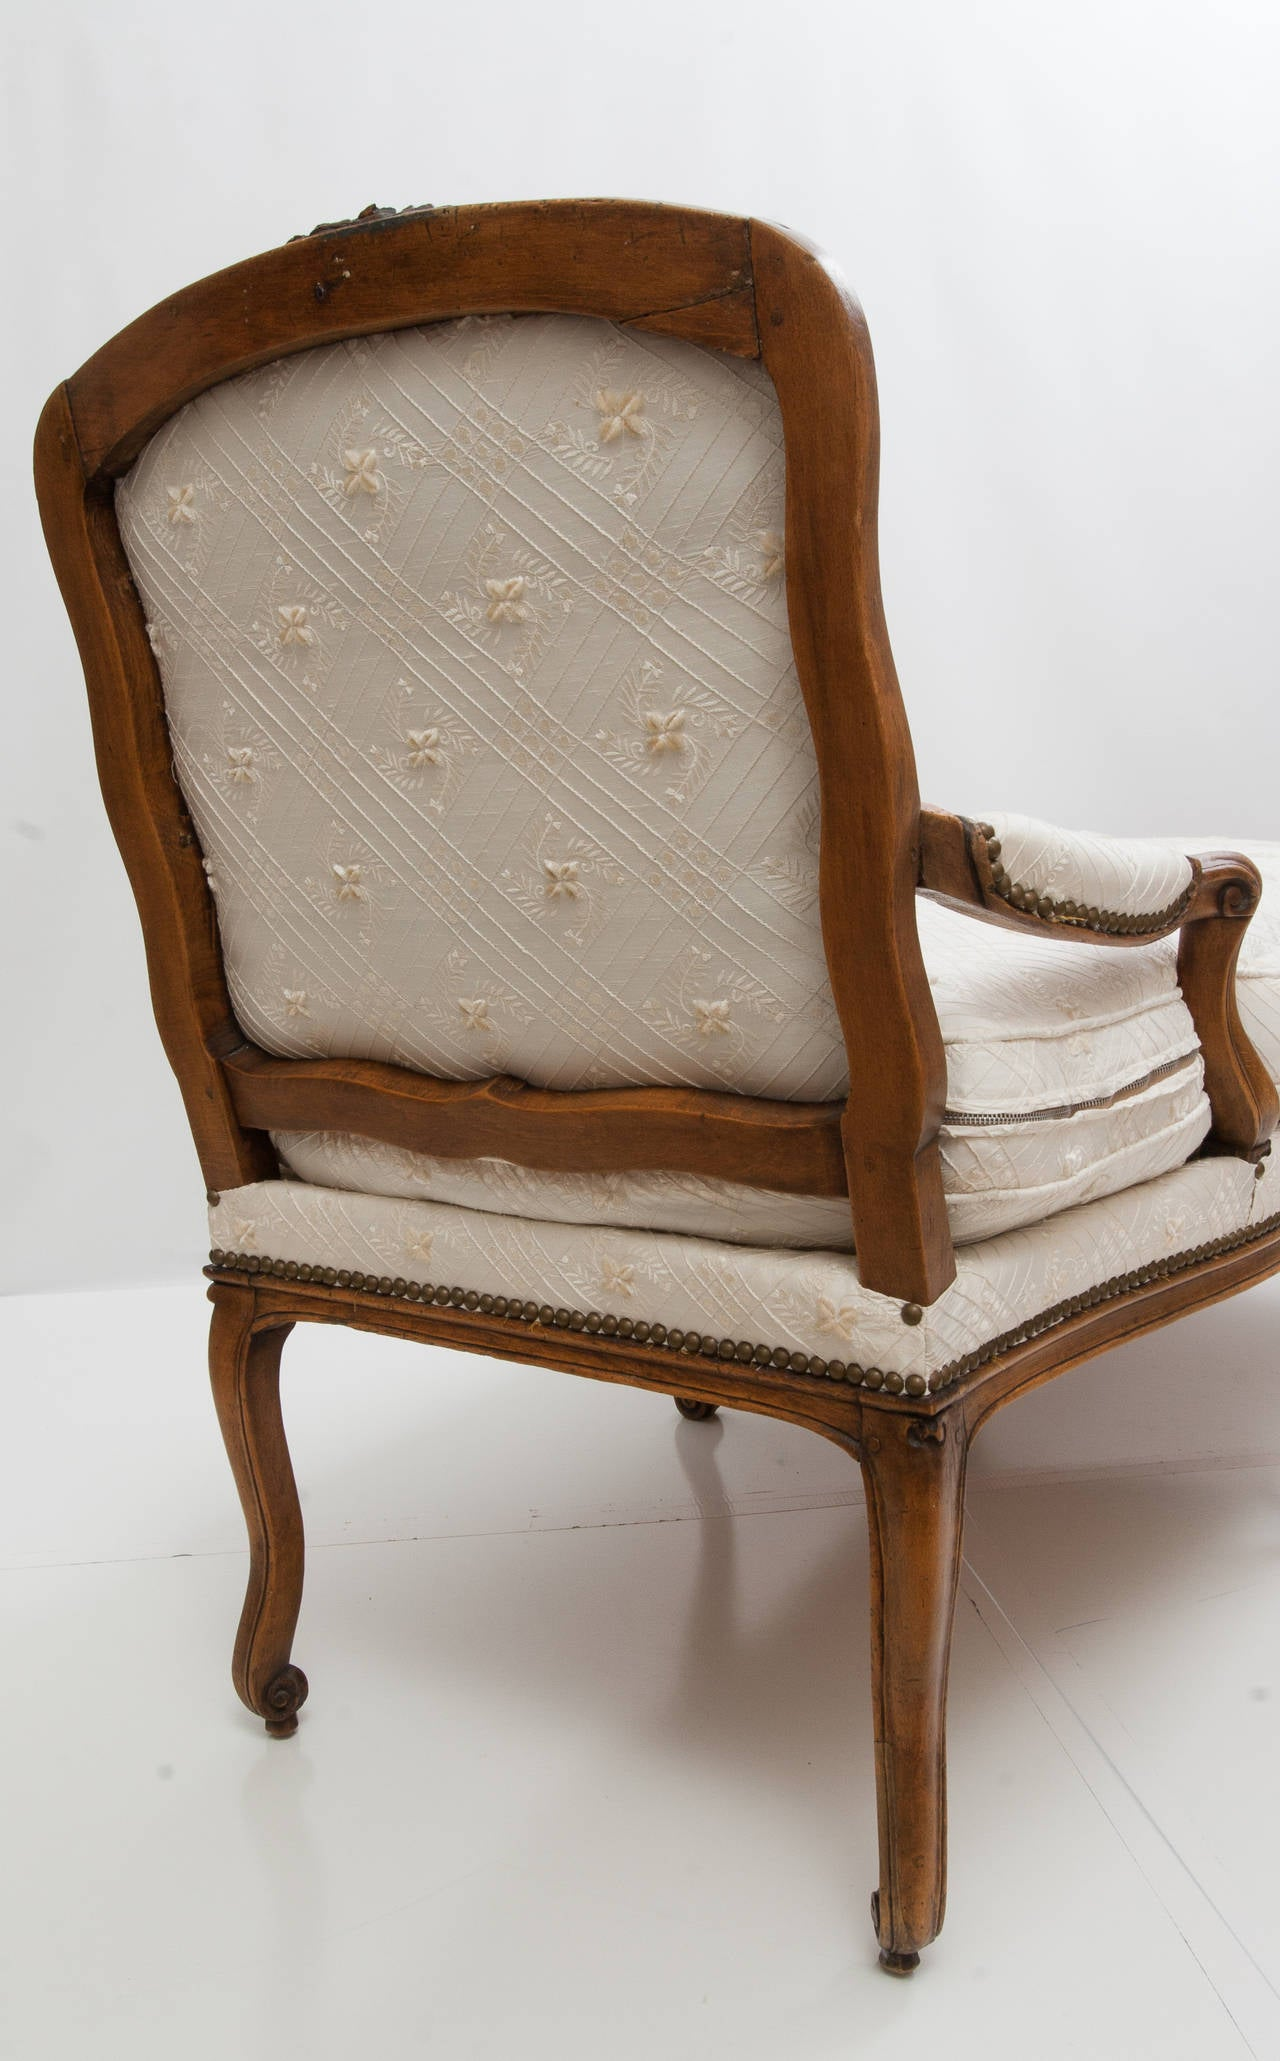 French antique louis xv style chaise lounge for sale at for Antique chaise for sale